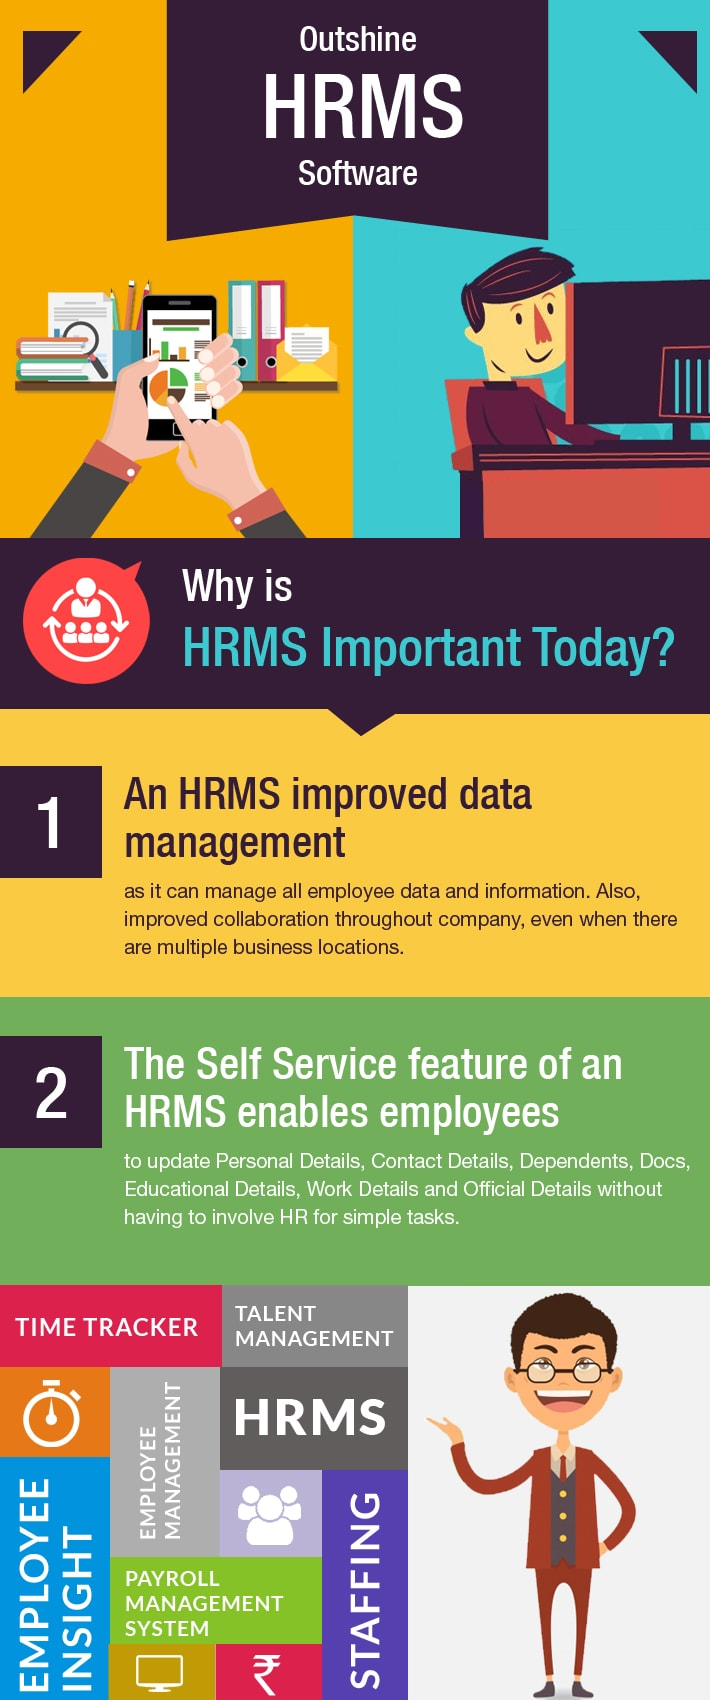 Why HRMS Software is important